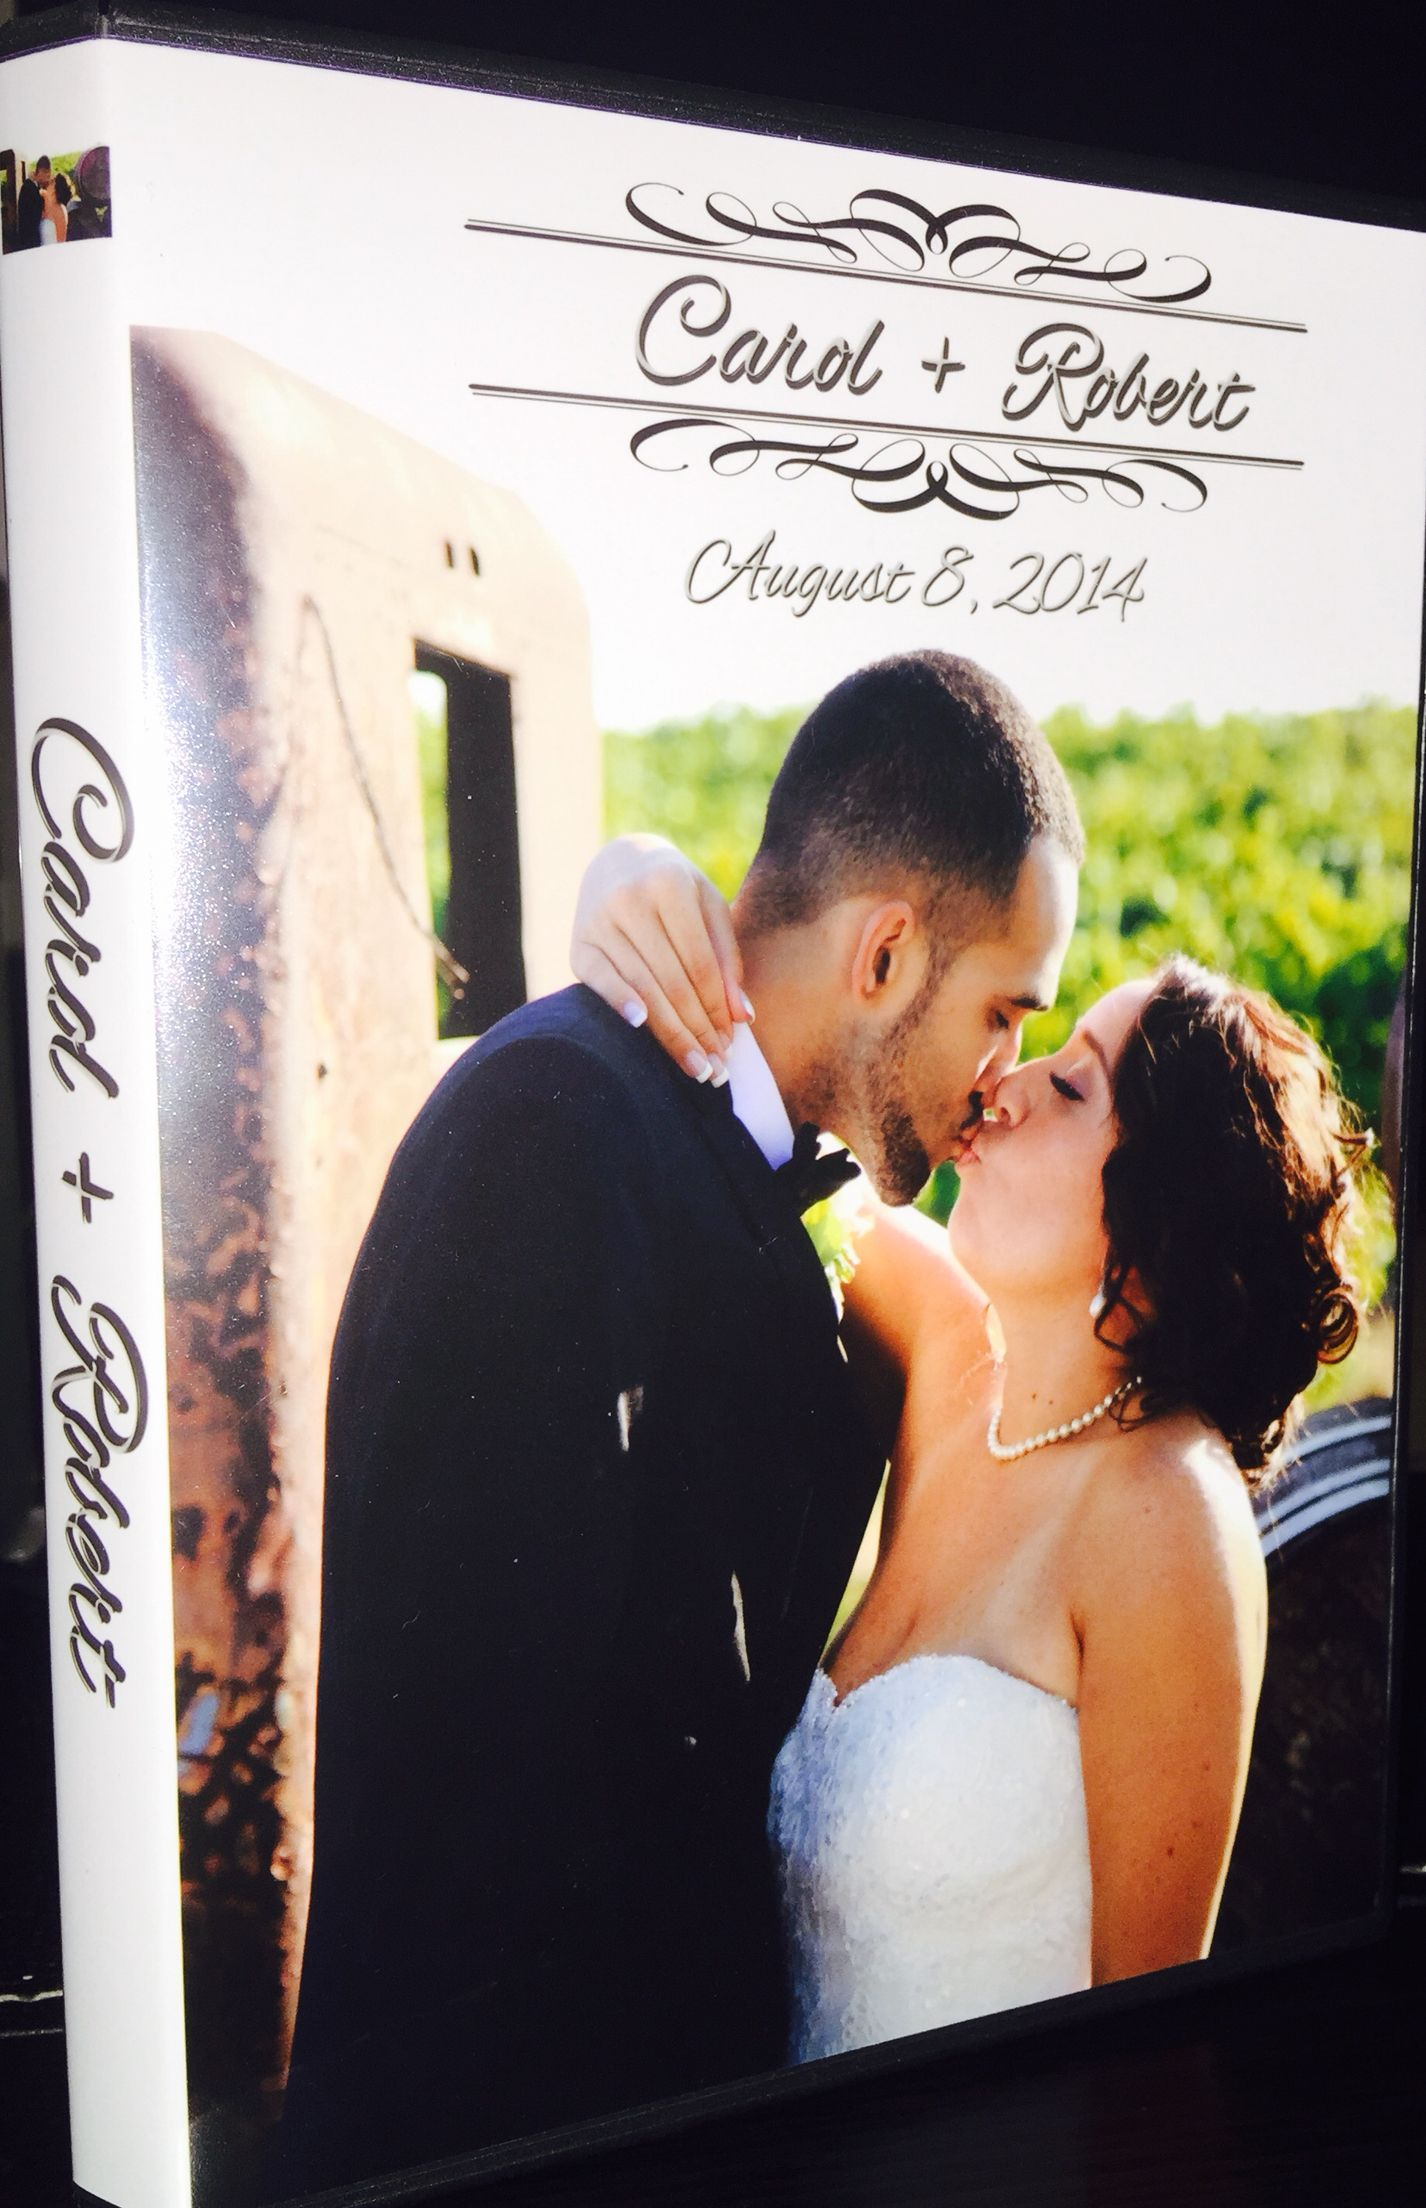 Wedding Dvd Cover Photography Packaging Design Invitations Valentines Day Weddings